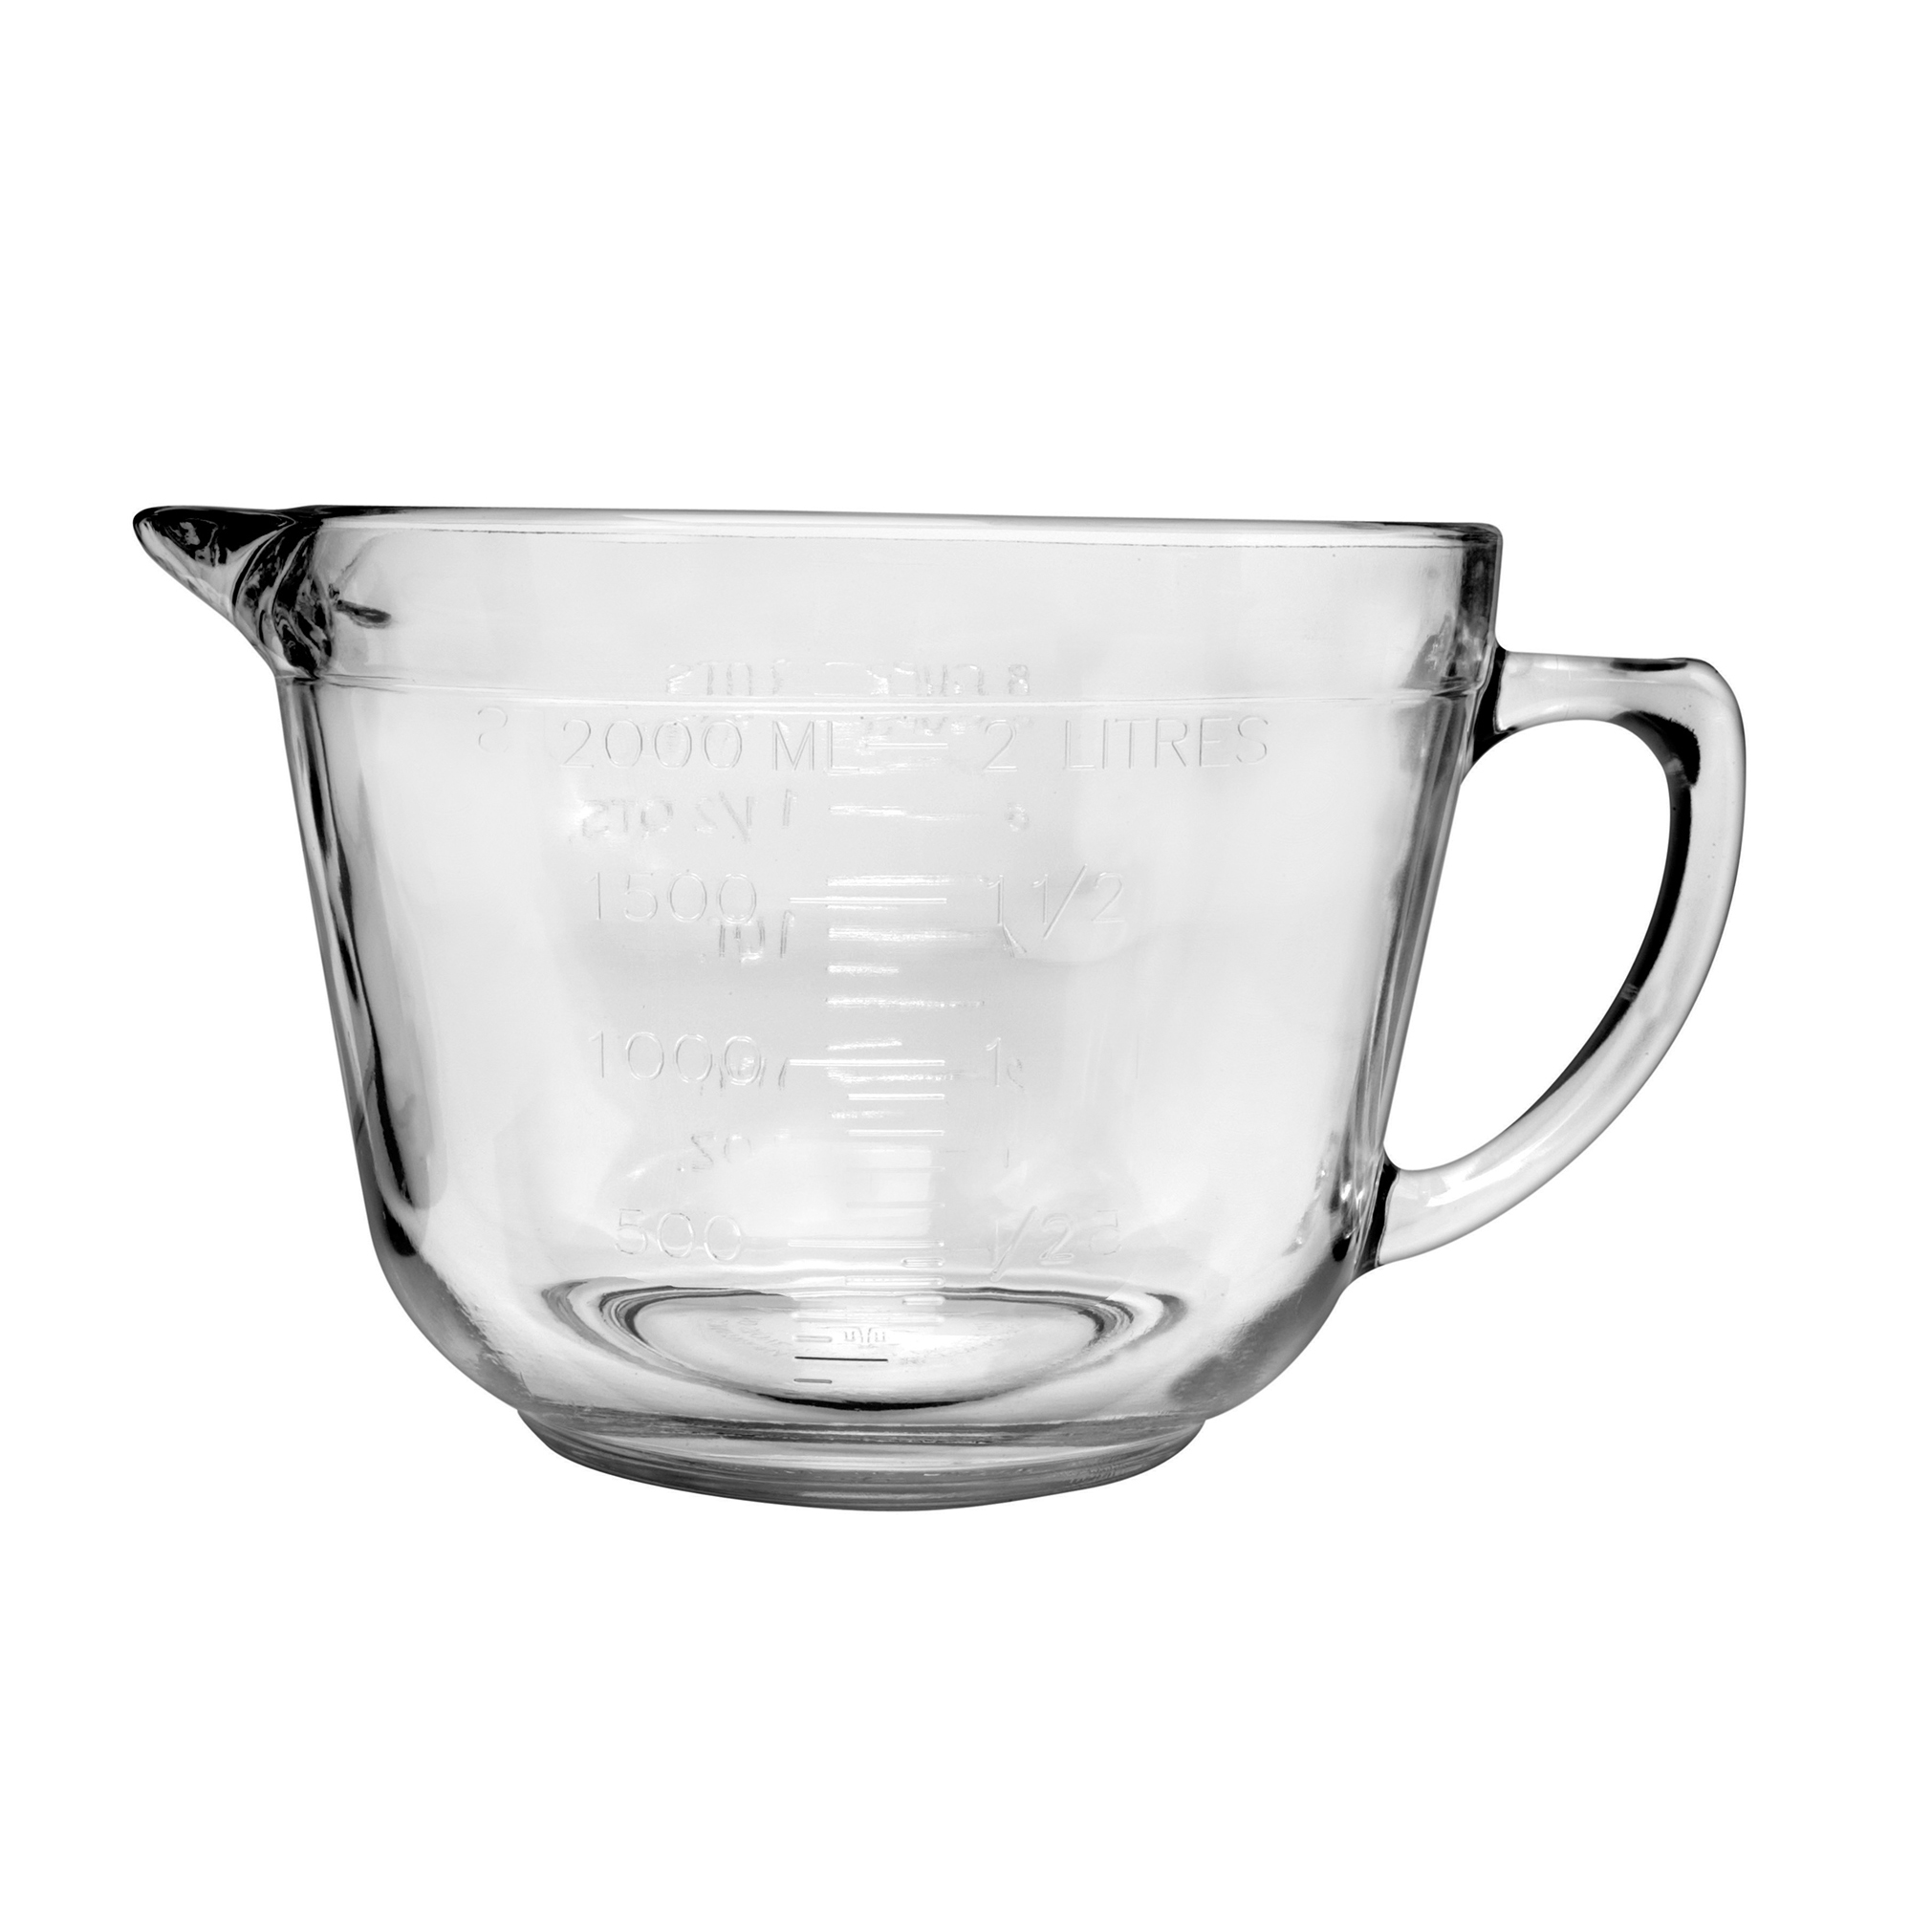 Anchor Hocking Foodservice 81605AHG18 mixing bowl, glass